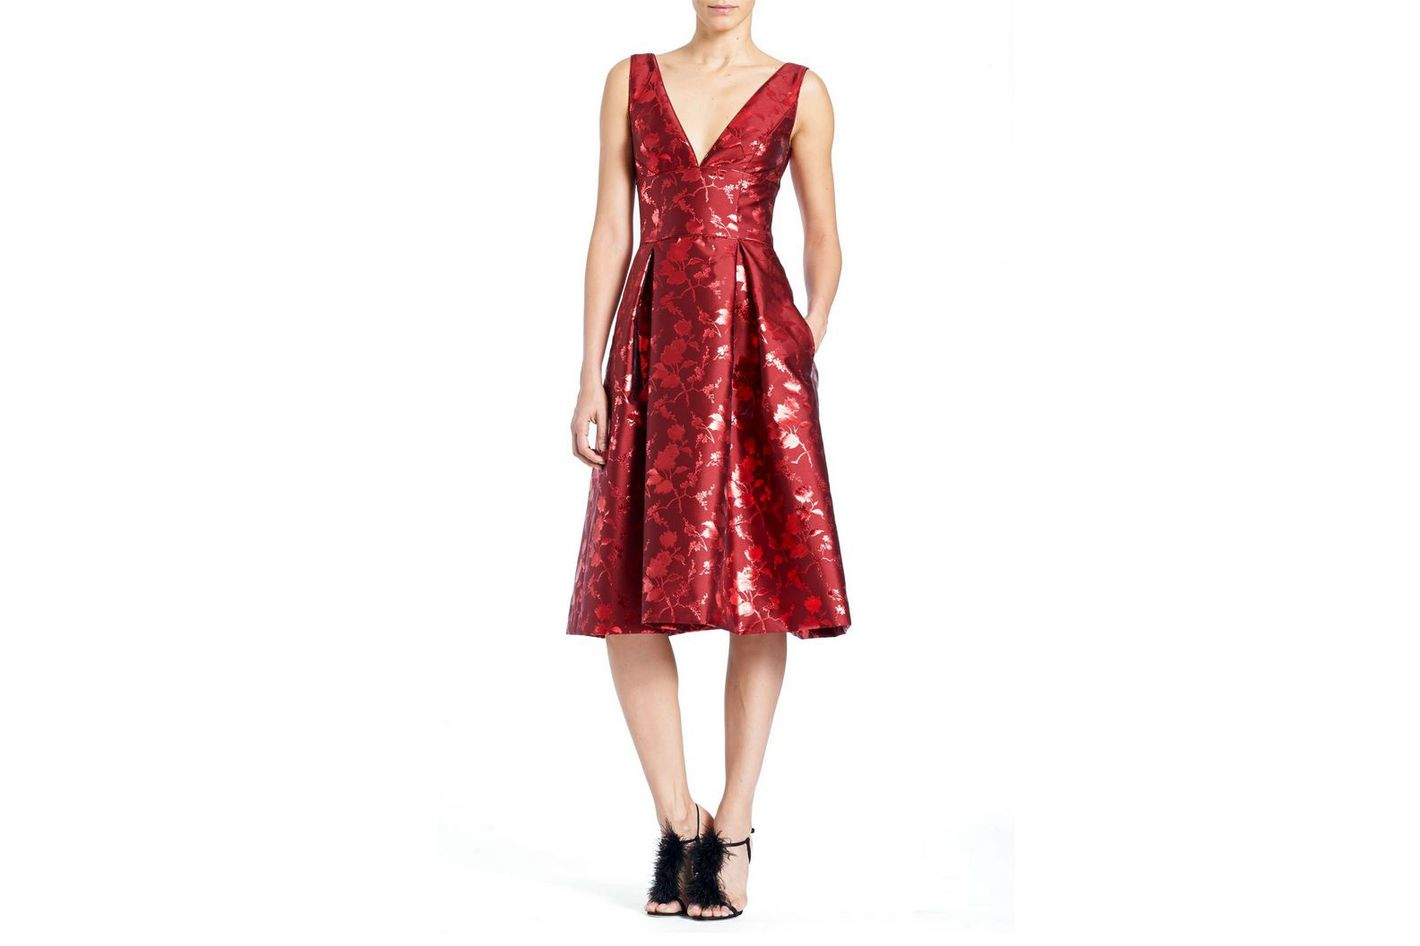 Carolina Herrera Sleeveless  Jacquard Dress